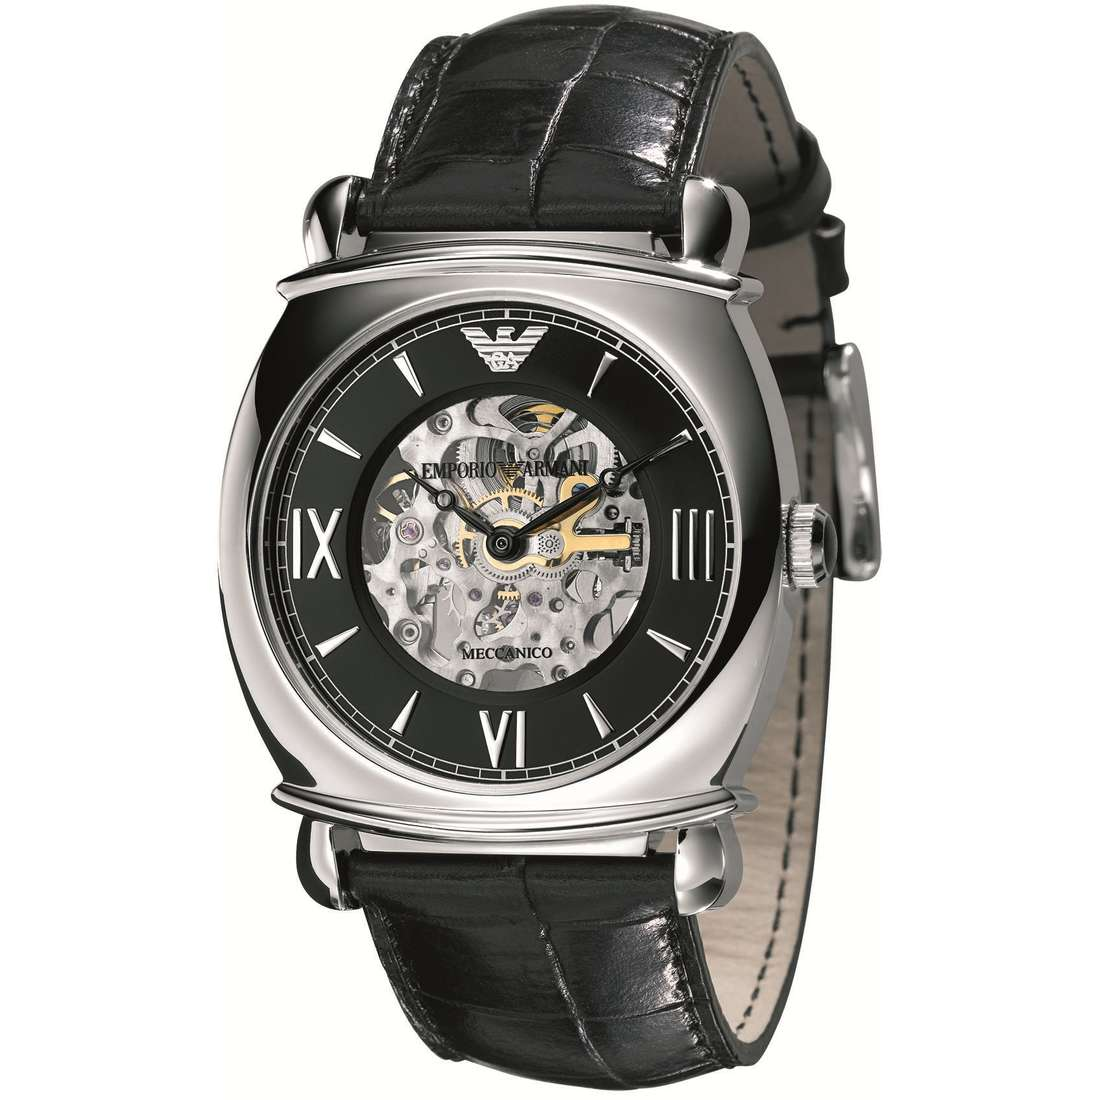 watch mechanical man Emporio Armani AR4633